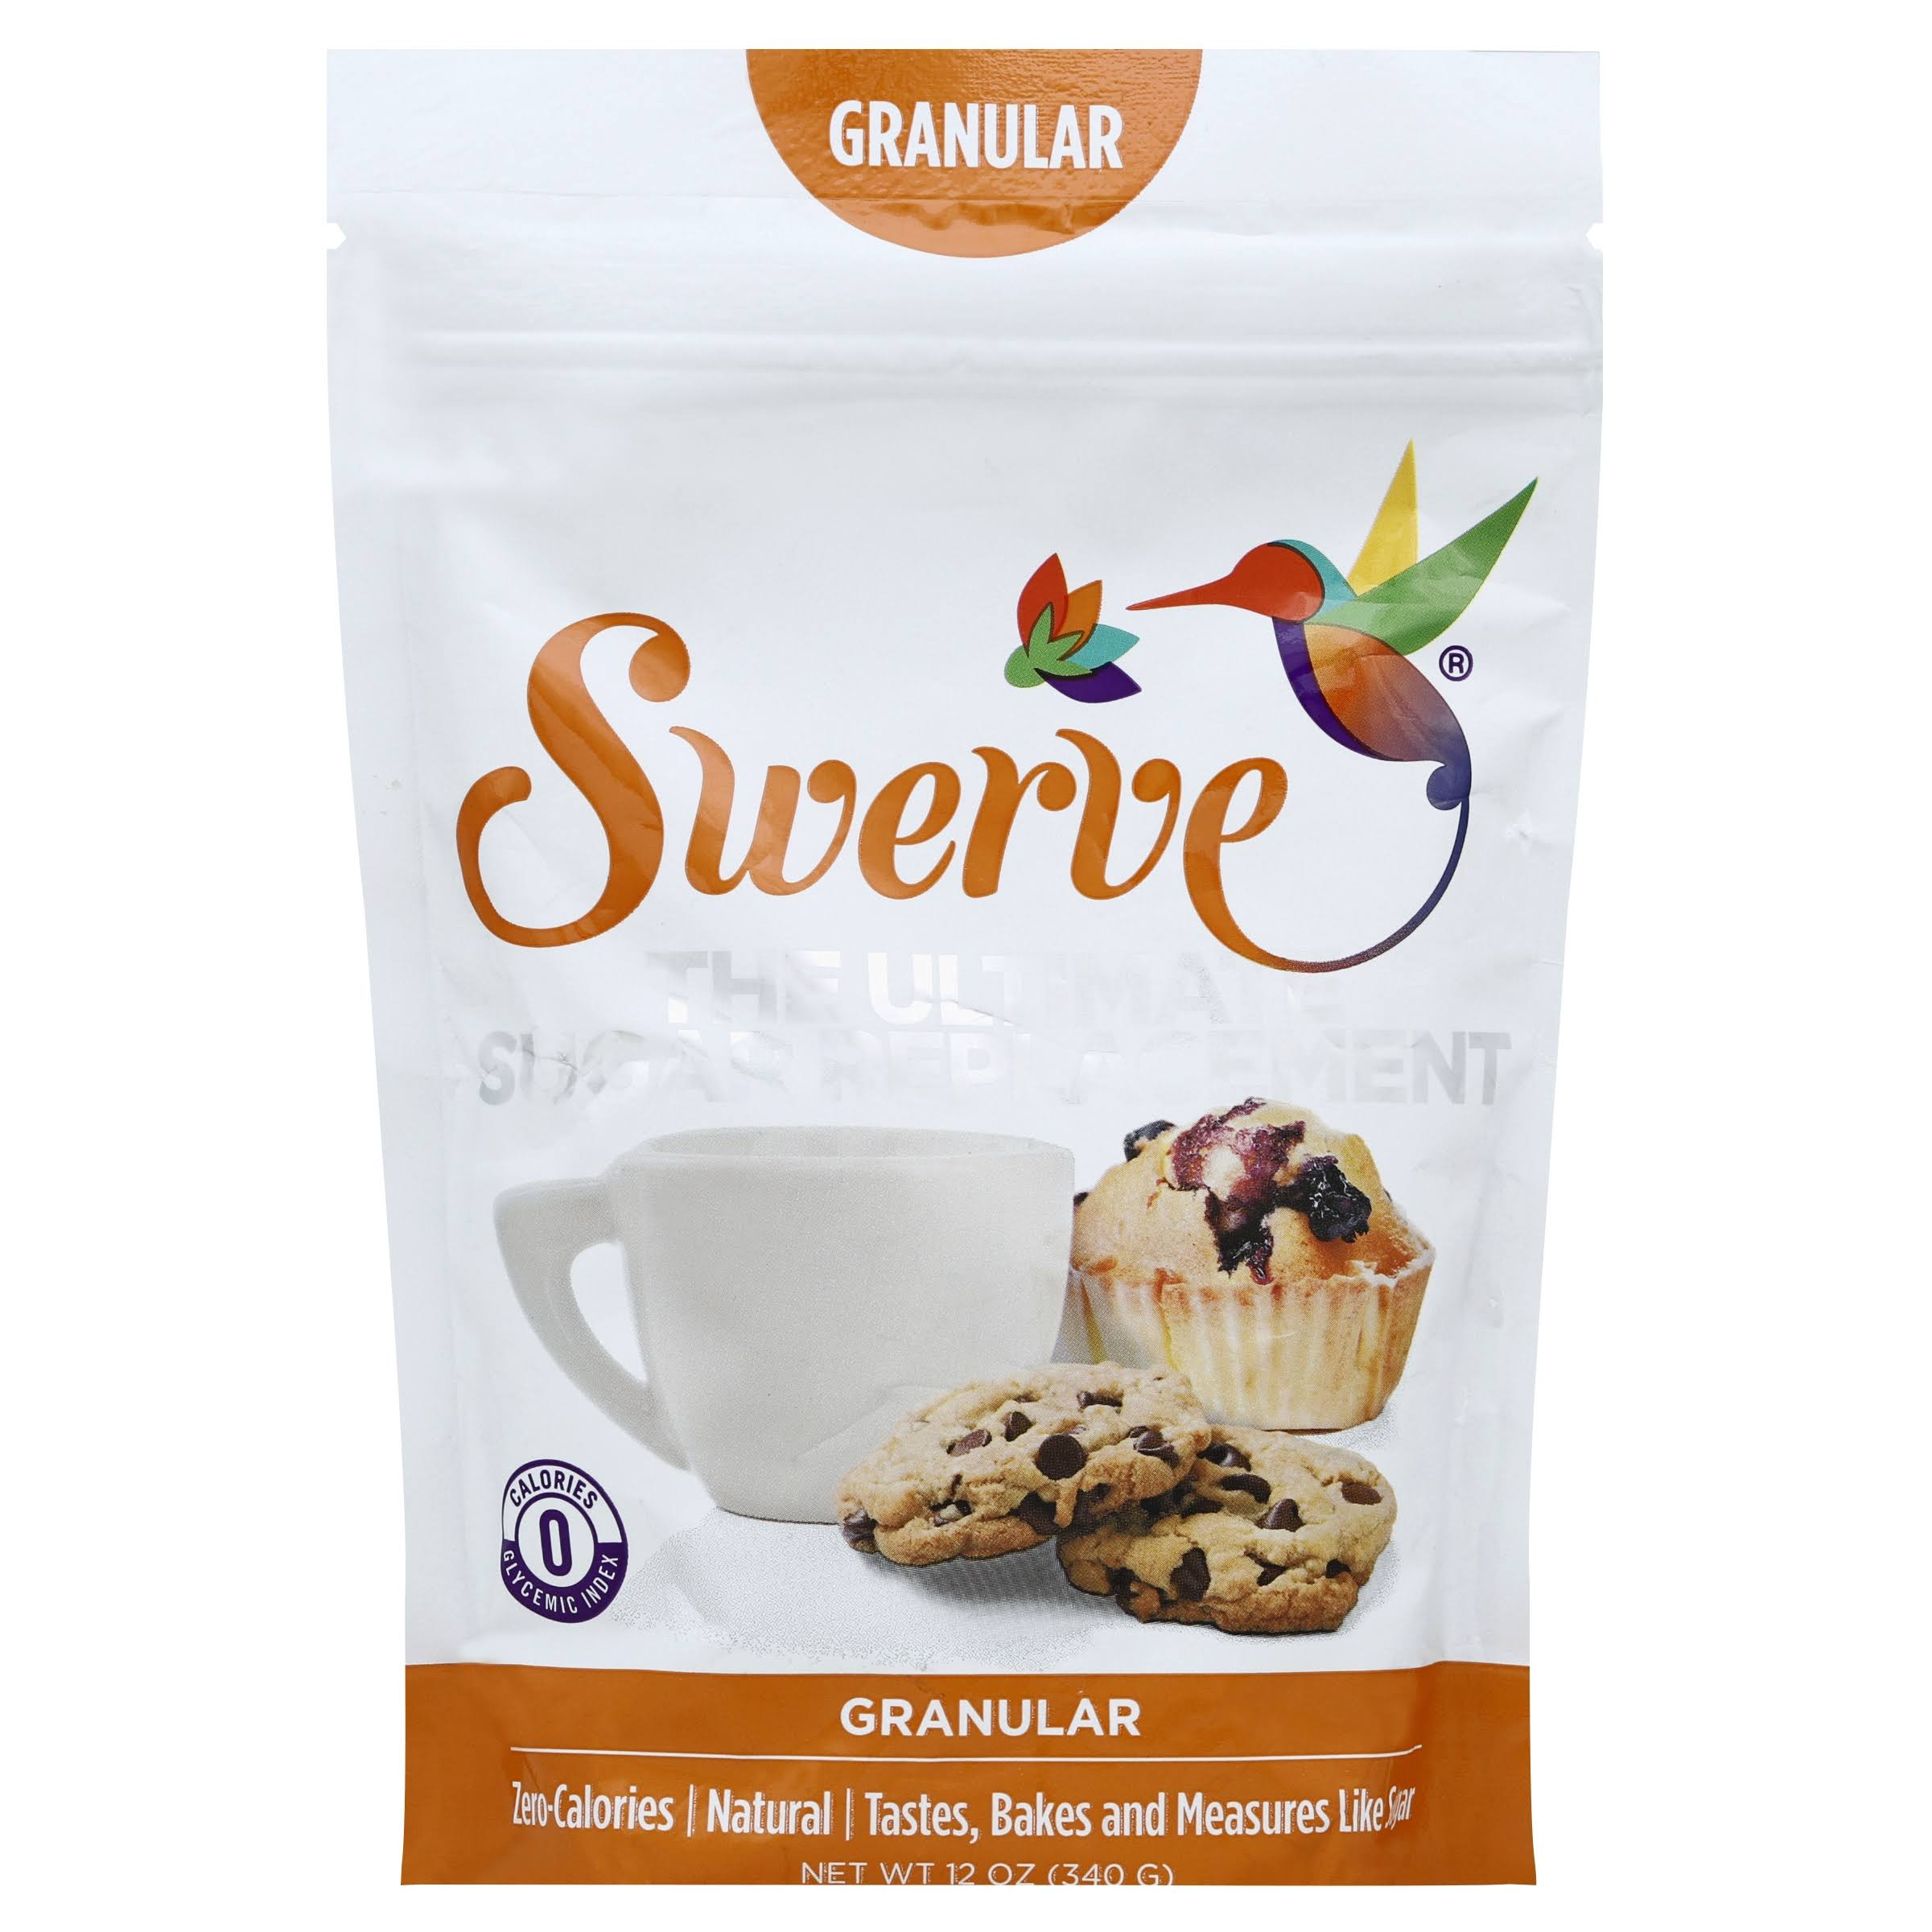 Swerve The Ultimate Sugar Replacement - Granular, 12oz